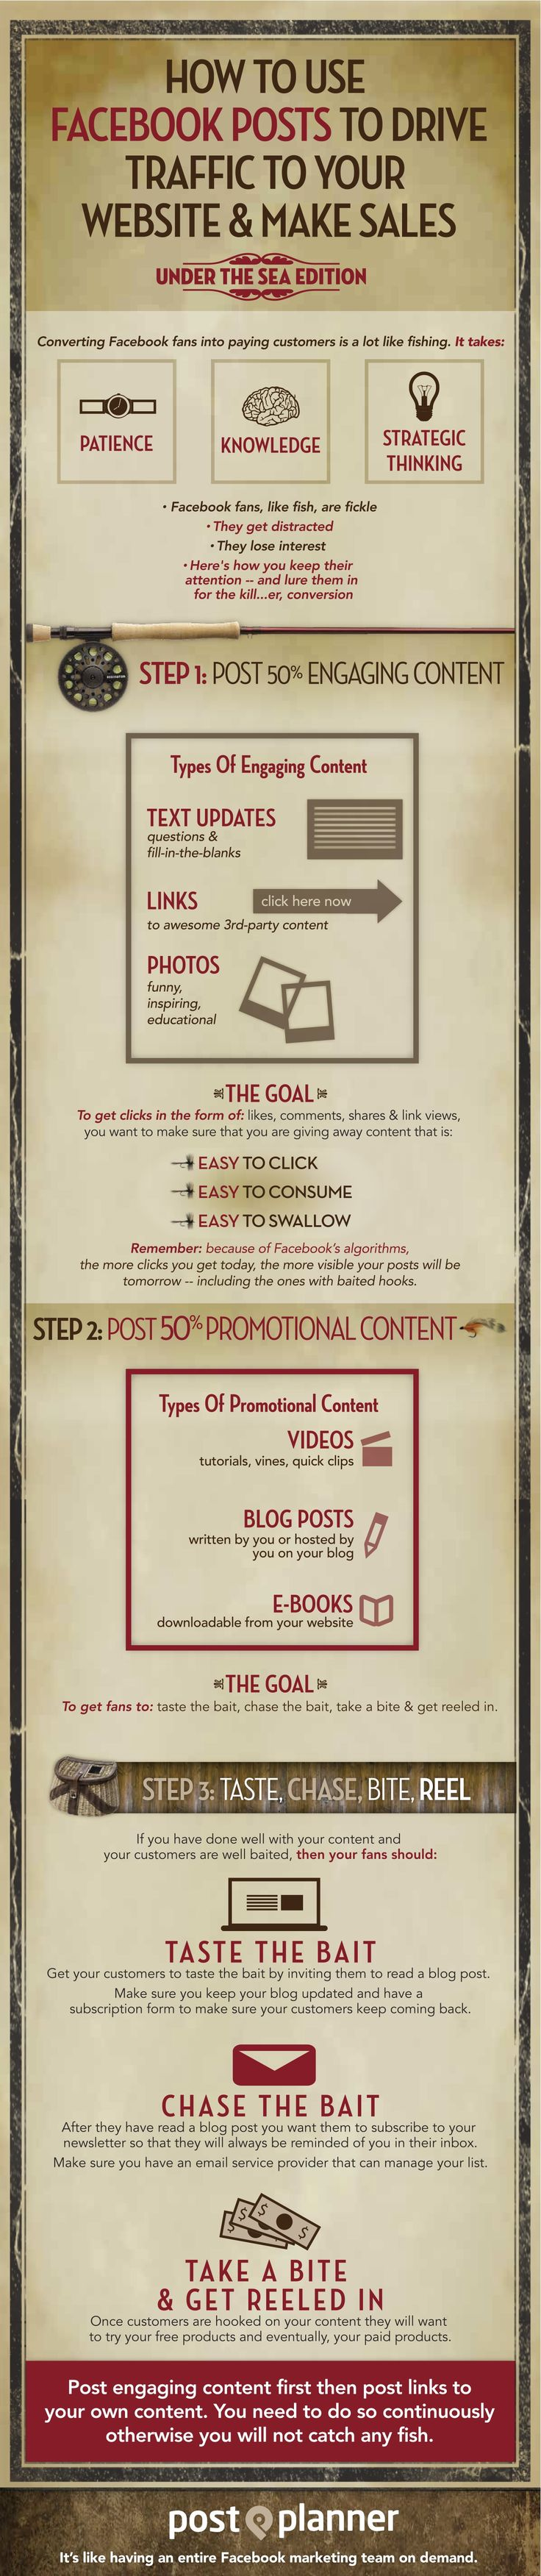 How To Use Facebook Posts To Drive Traffic To Your Website And Make Sales [Infographic] #FacebookMarketing #SocialMediaMarketing